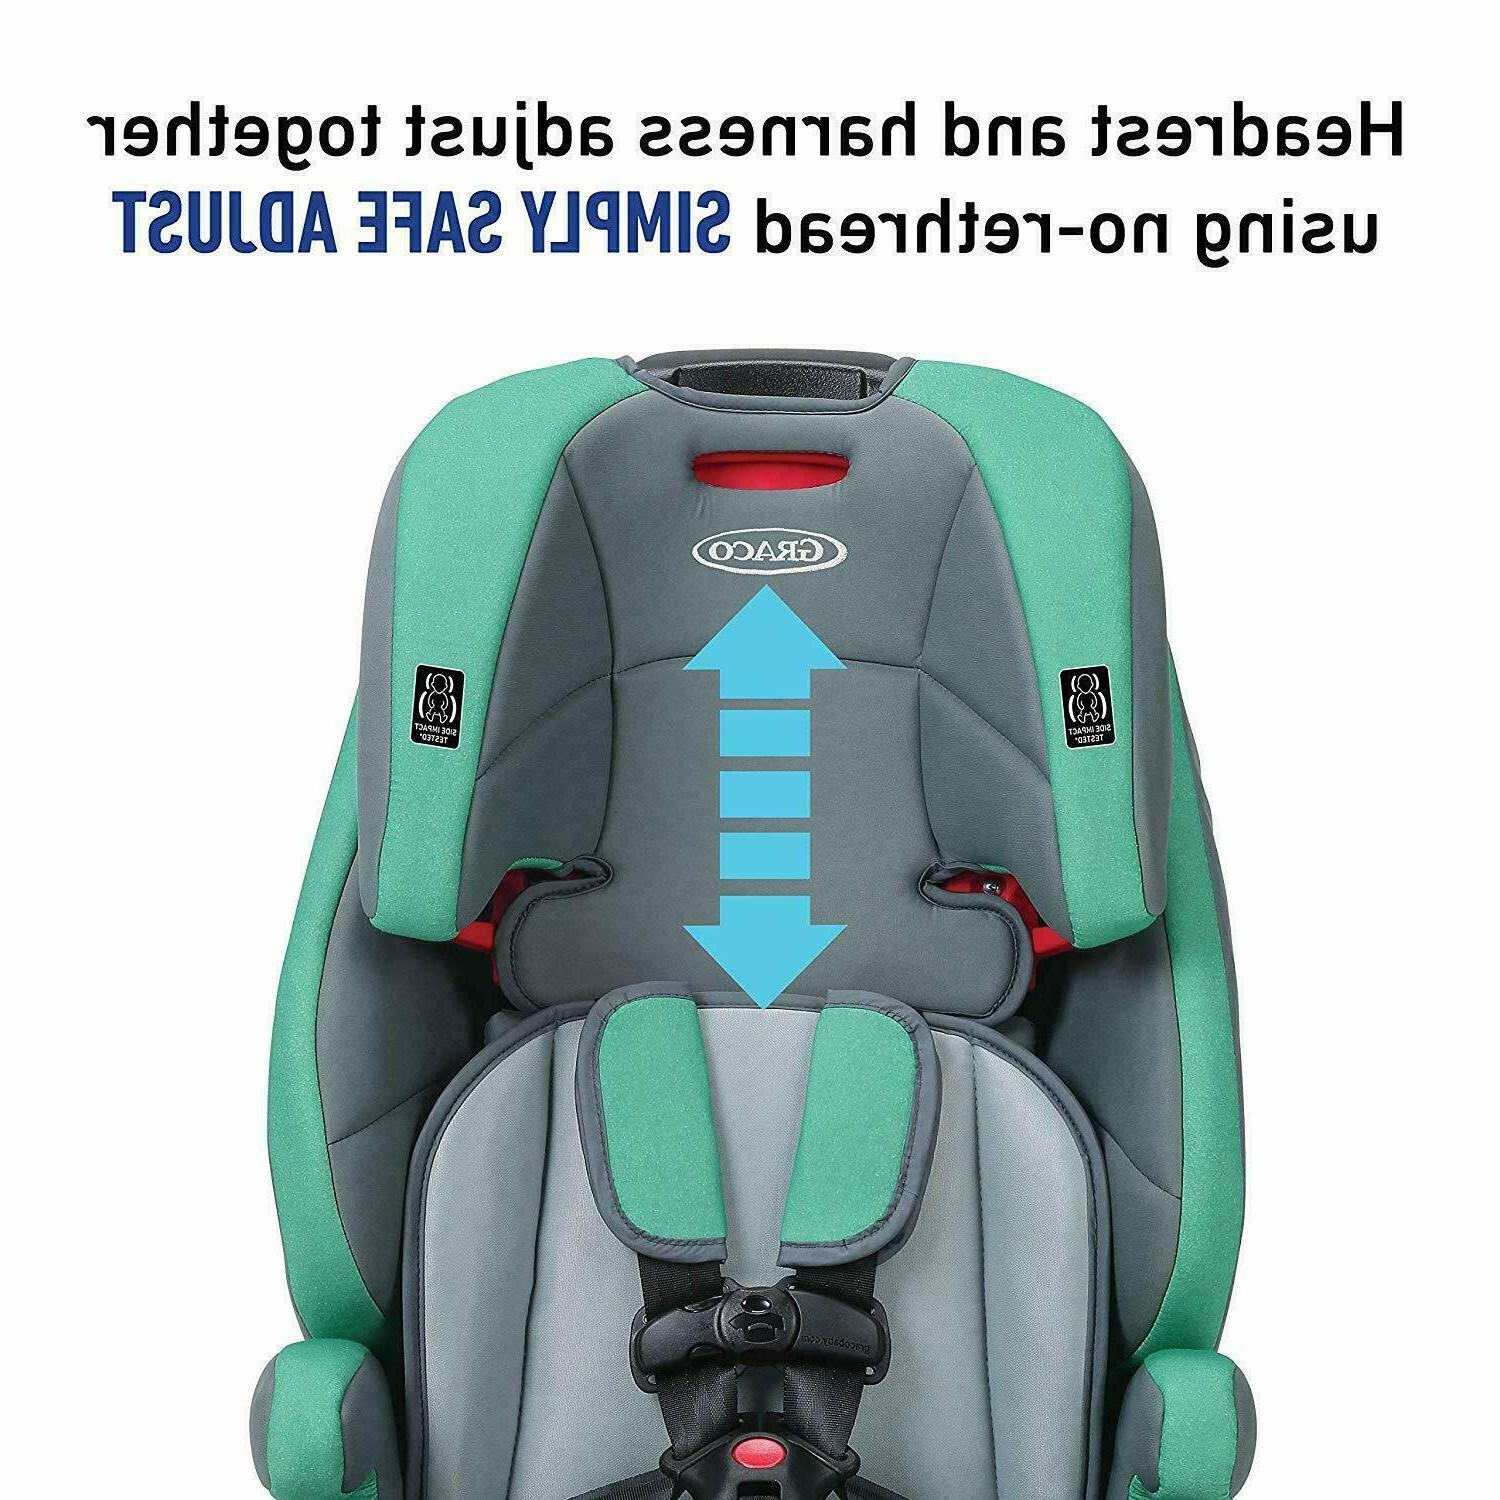 New Graco in 1 Harness Booster Seat, Basin